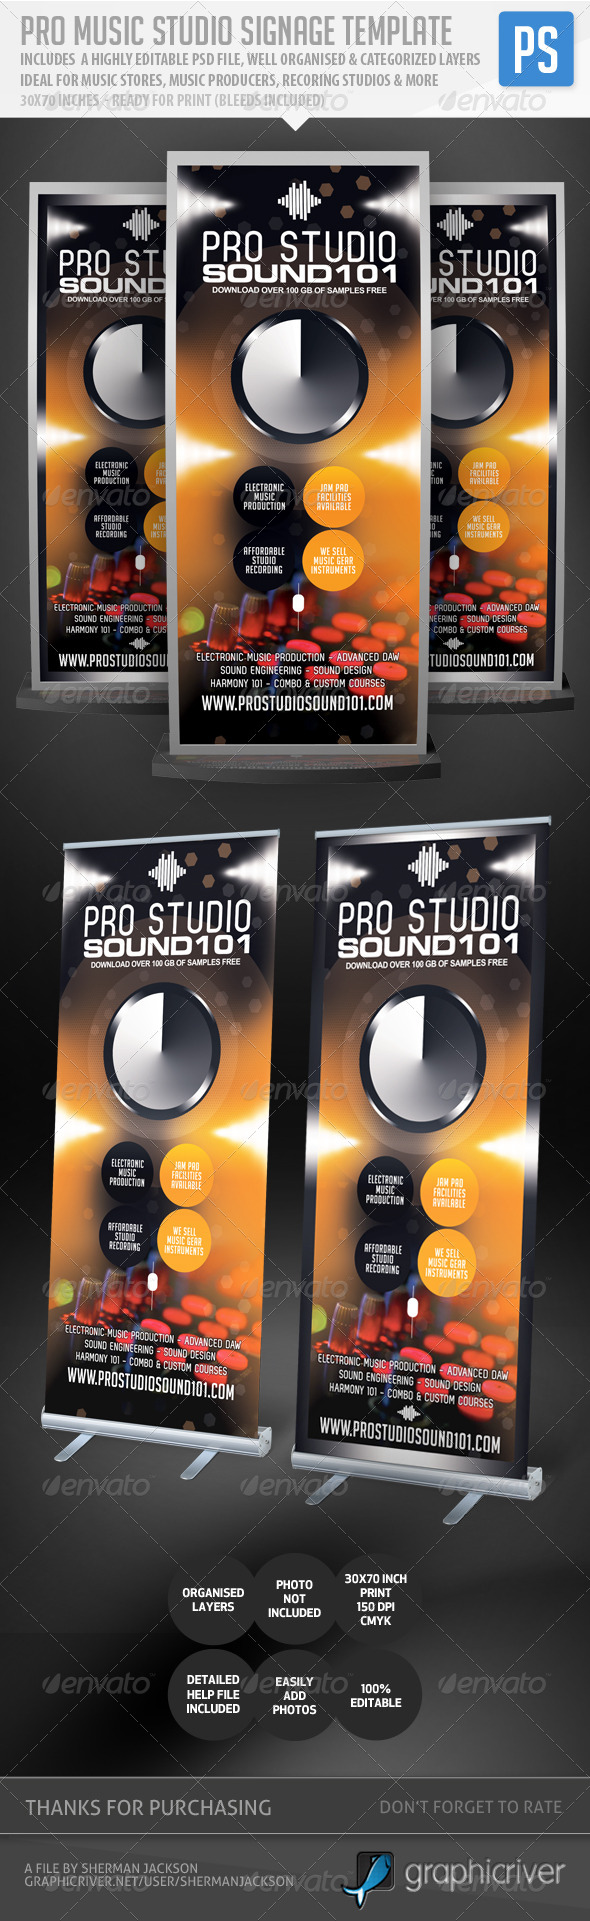 GraphicRiver Pro Music Studio Music Expo Signage Template 5121305